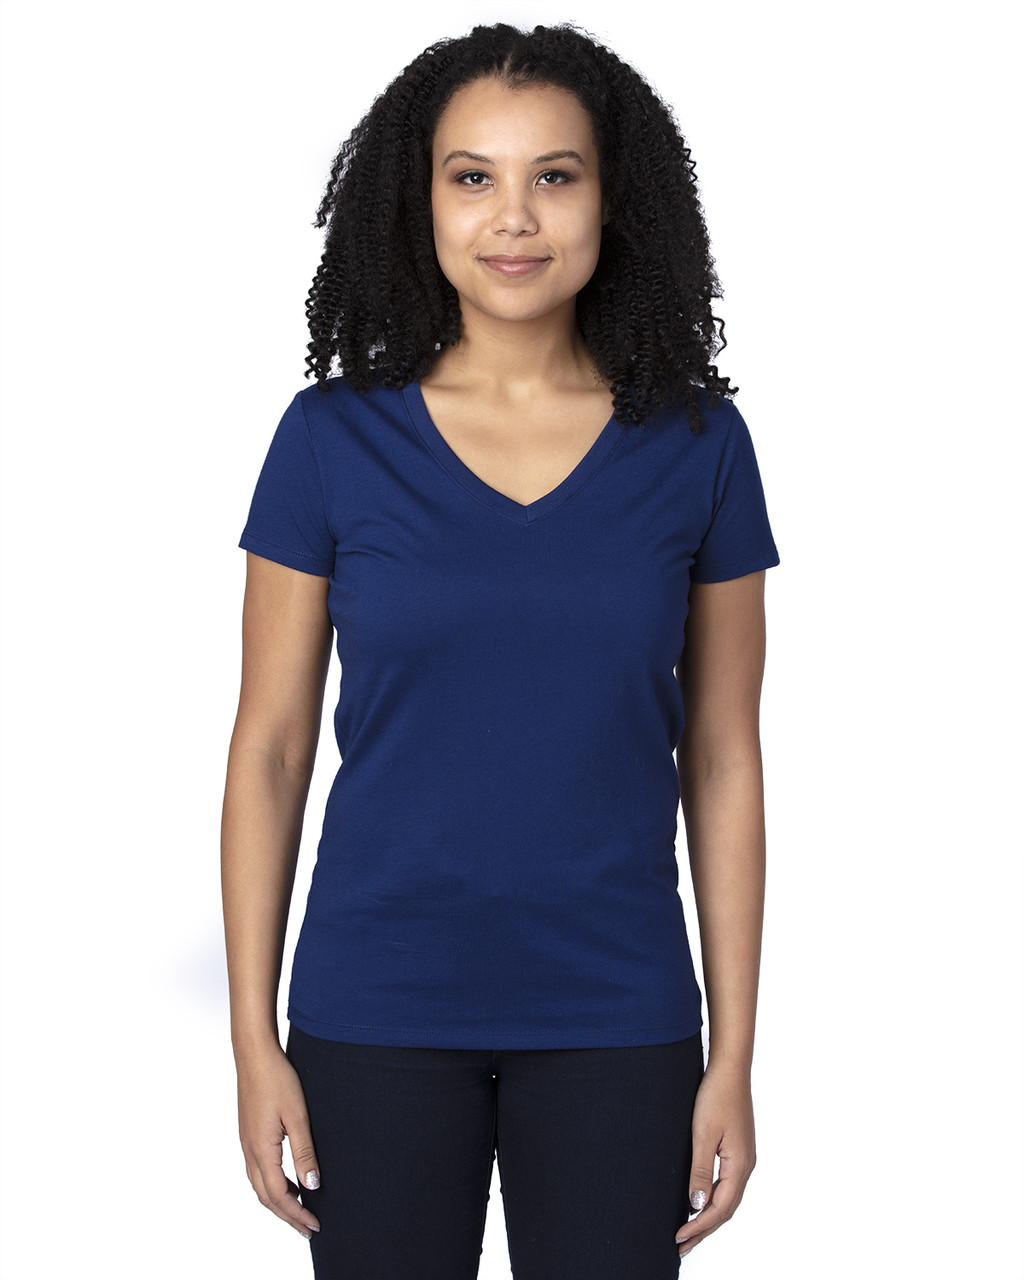 Navy - 200RV Threadfast Ladies' Ultimate Short-Sleeve V-Neck T-Shirt | BlankClothing.ca